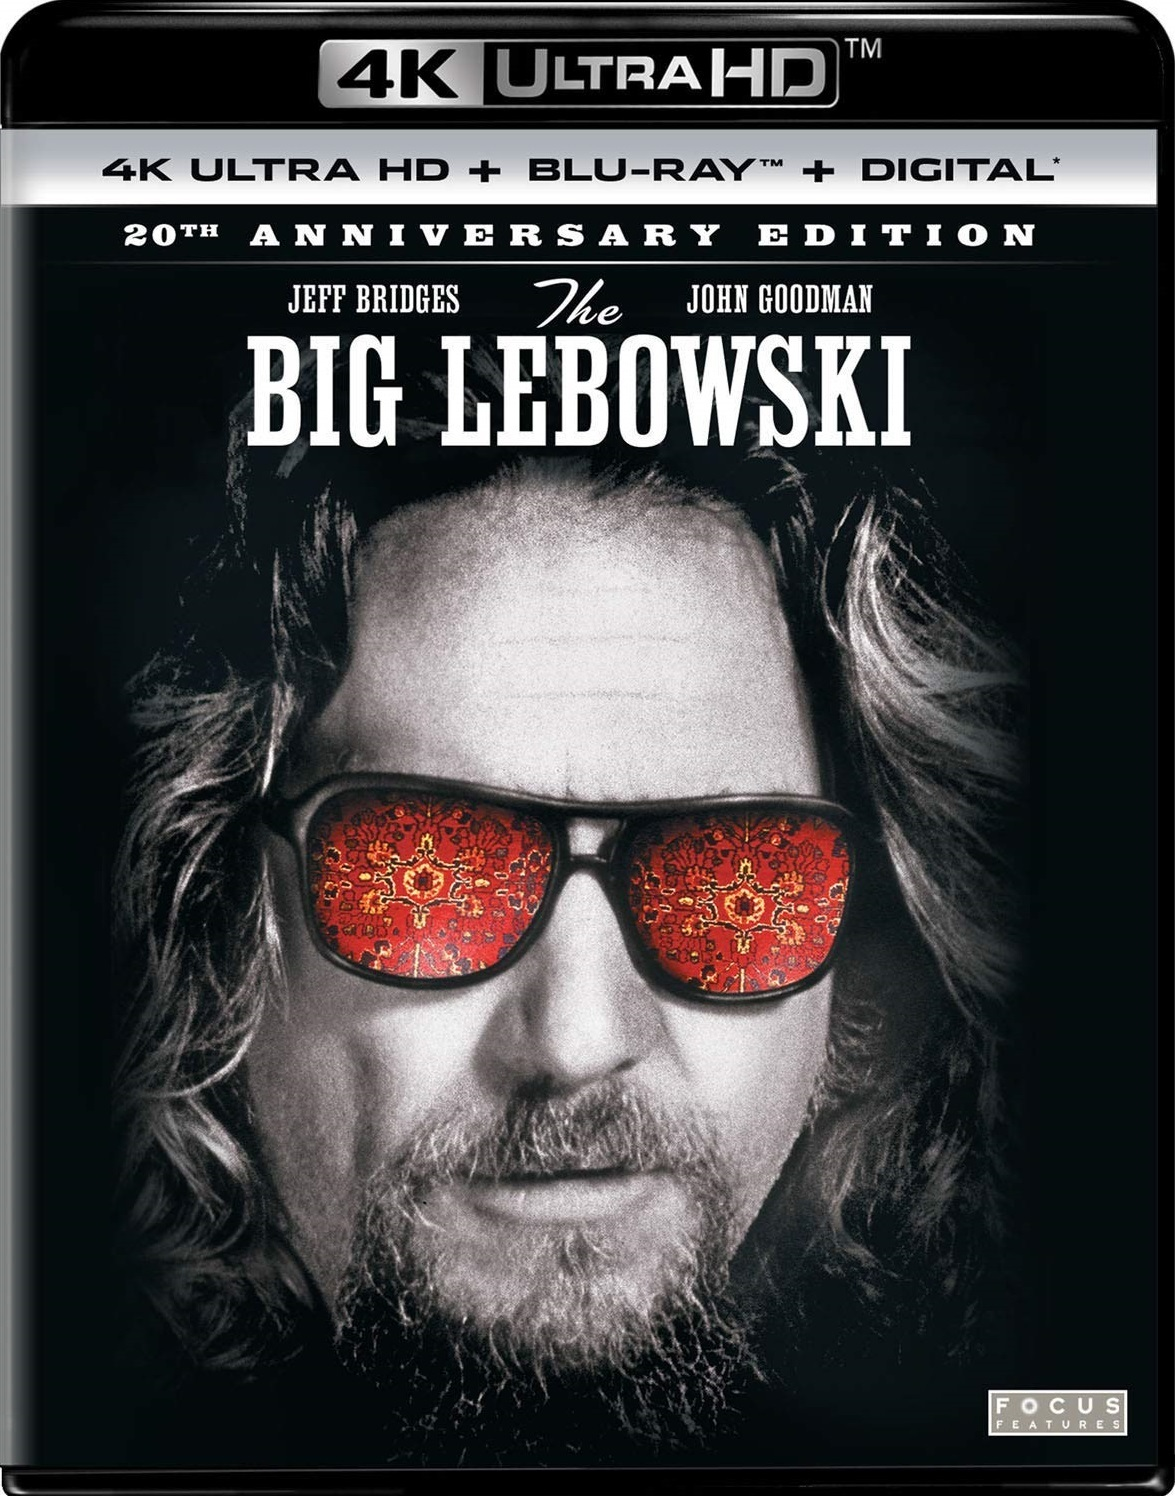 The Big Lebowski 4K (20th Anniversary Edition)(1998) Ultra HD Blu-ray